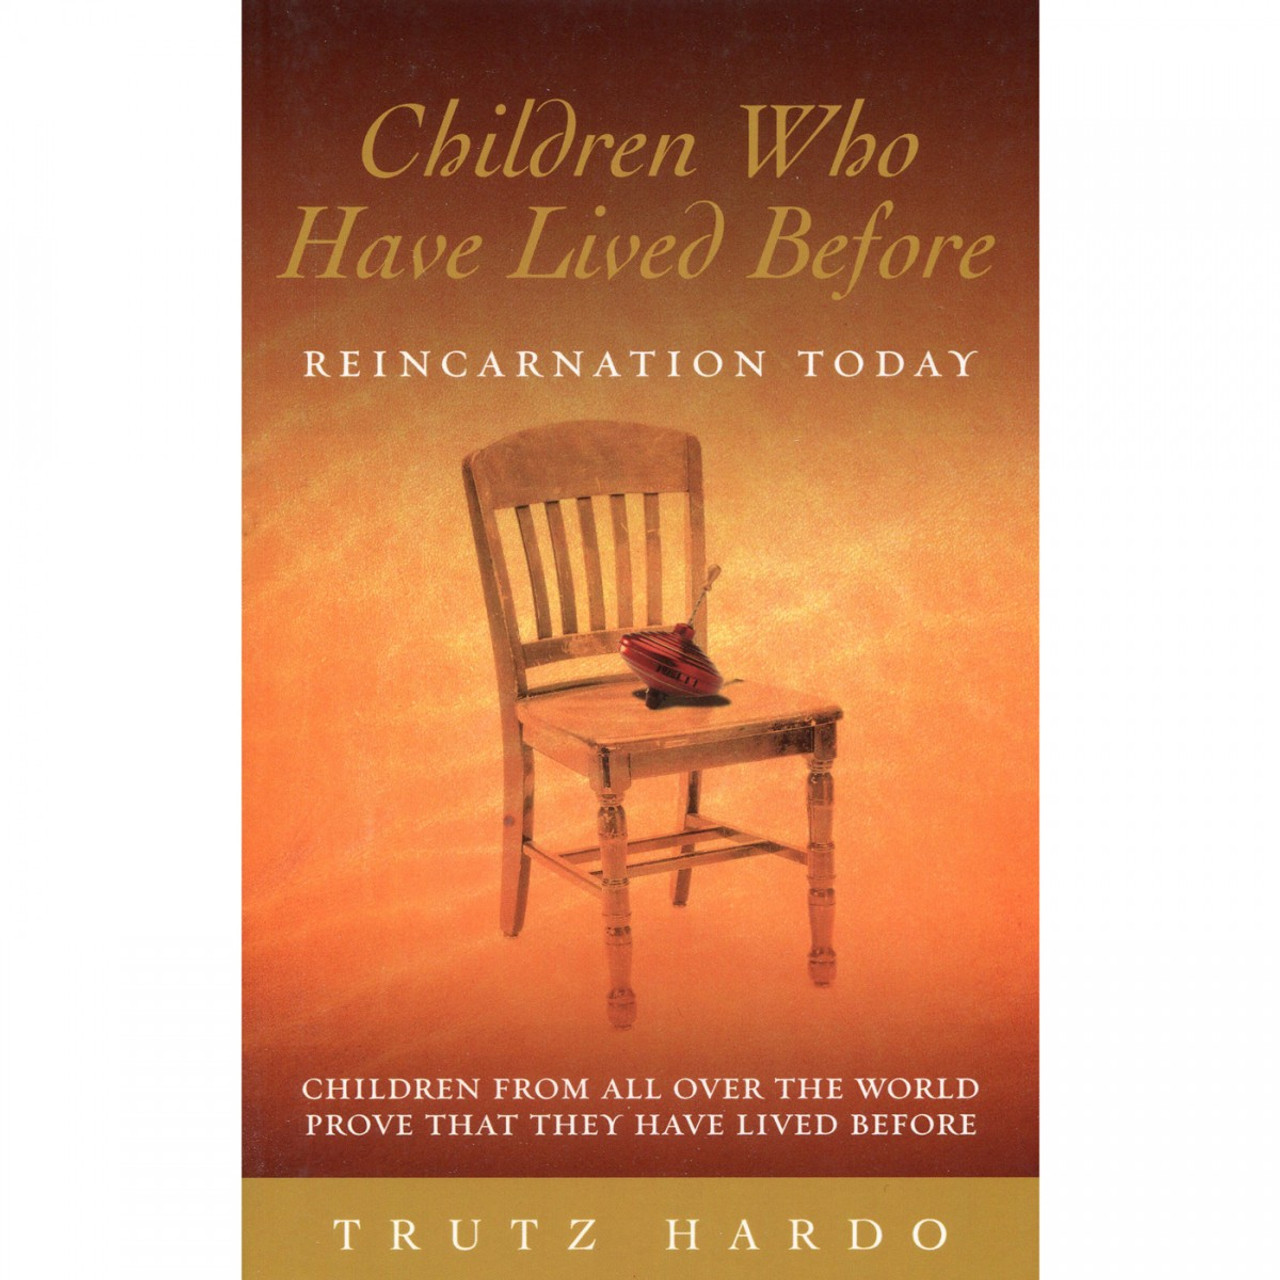 Children Who Have Lived Before by Trutz Hardo